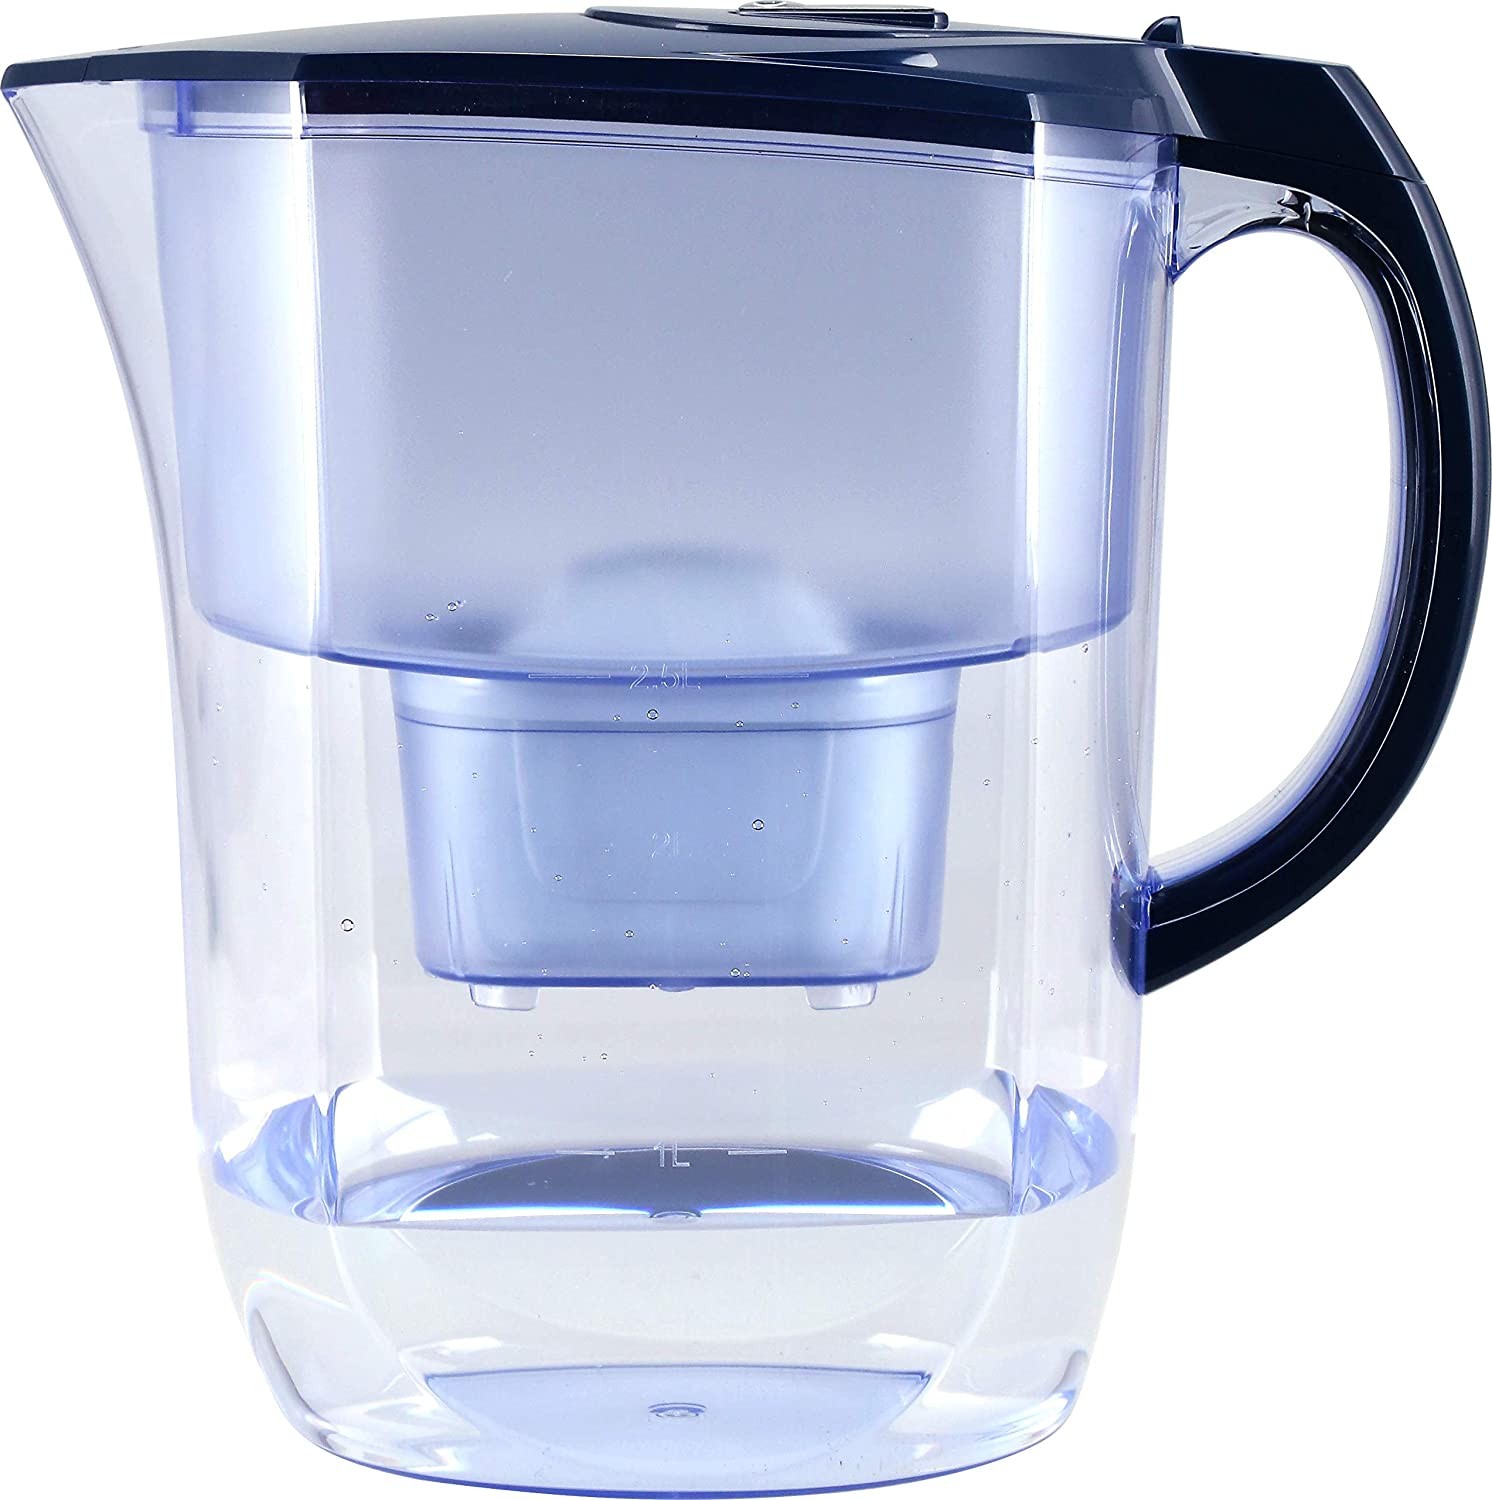 EHM 3.8L Activated Carbon Water Filter Pitcher